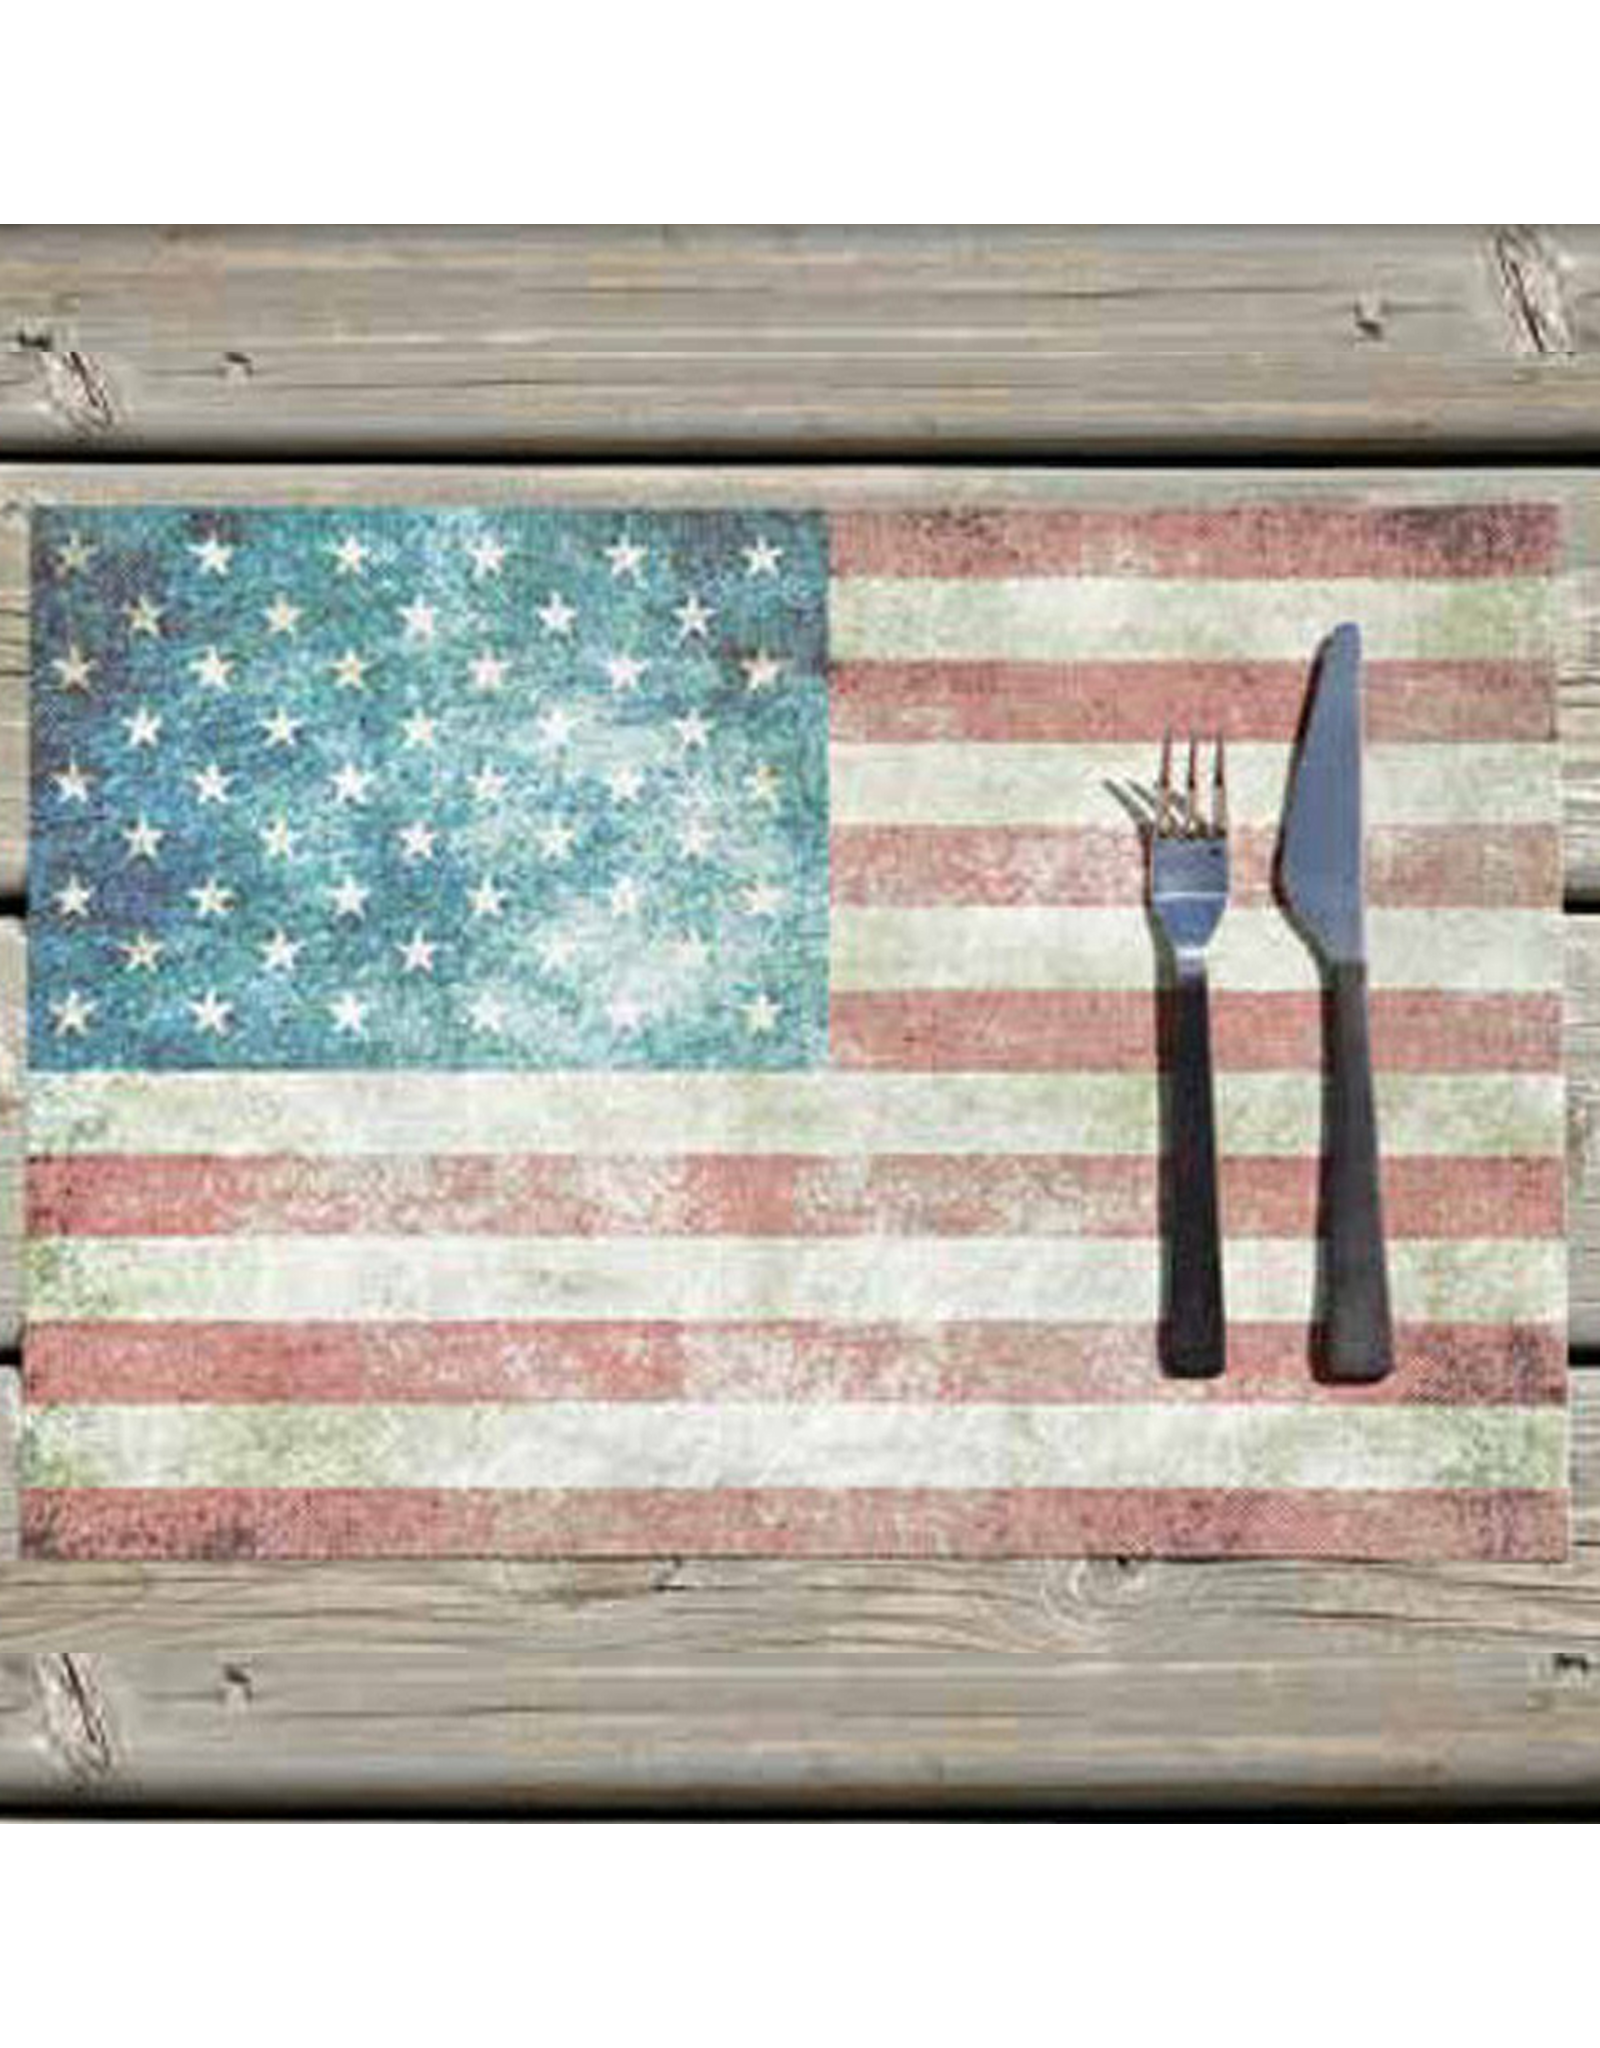 Vinyl Placemat 13x19 Inch American Flag Stars and Stripes